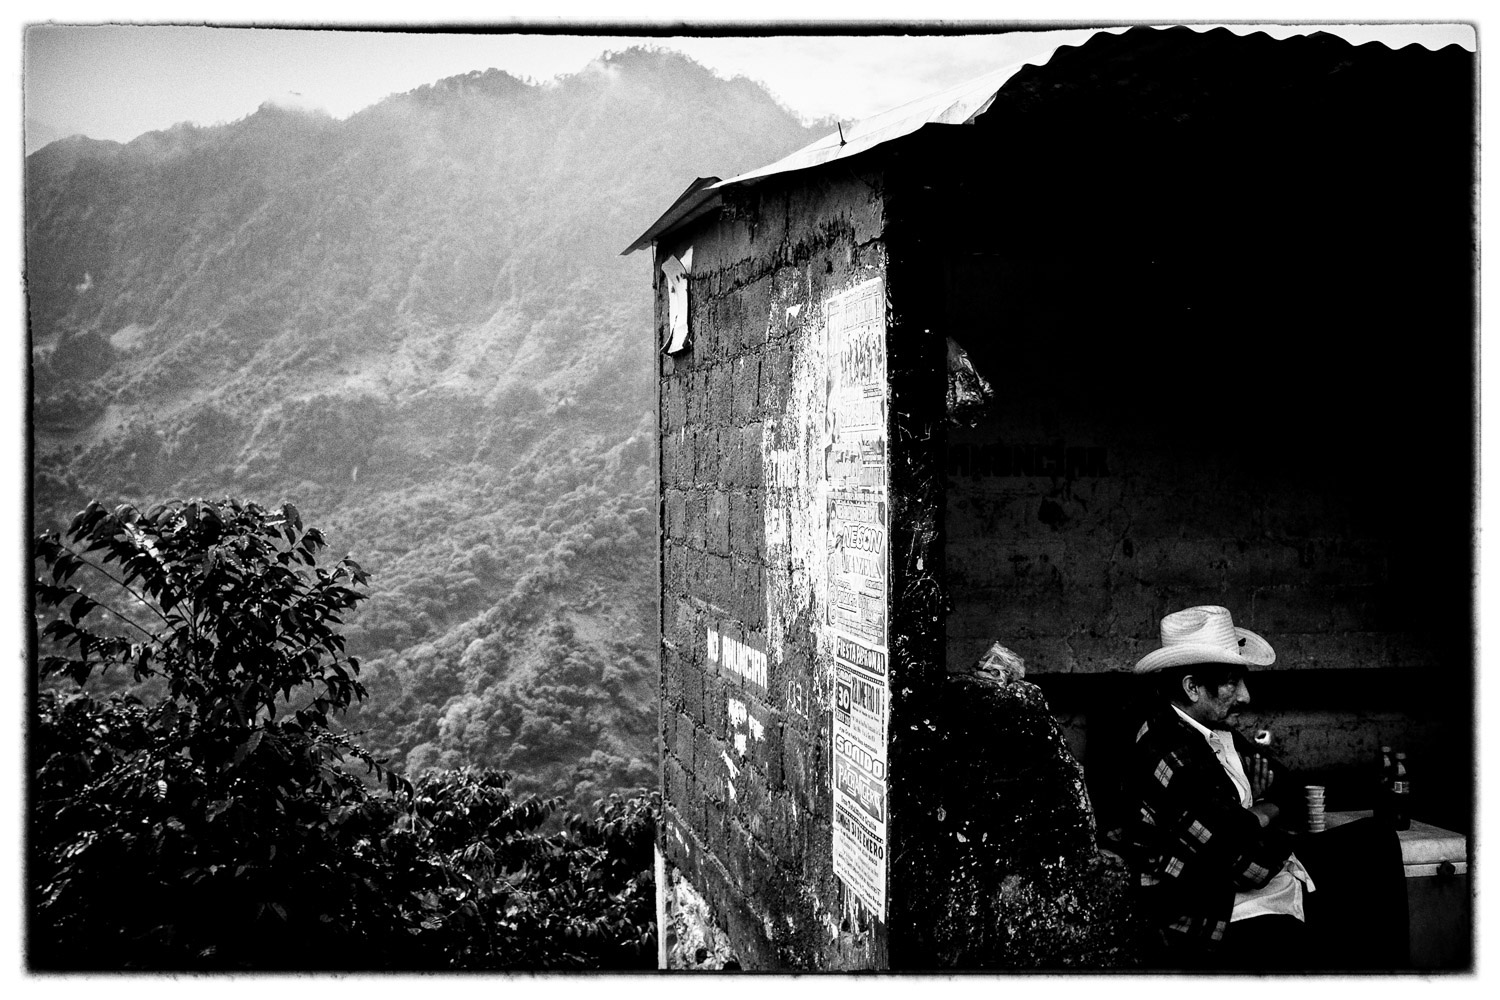 Along the mountain road to Teocelo, Veracruz, Mexico, a retired coffee worker sells Coca-Colas from a roadside shelter. Photo by Andrew Sullivan